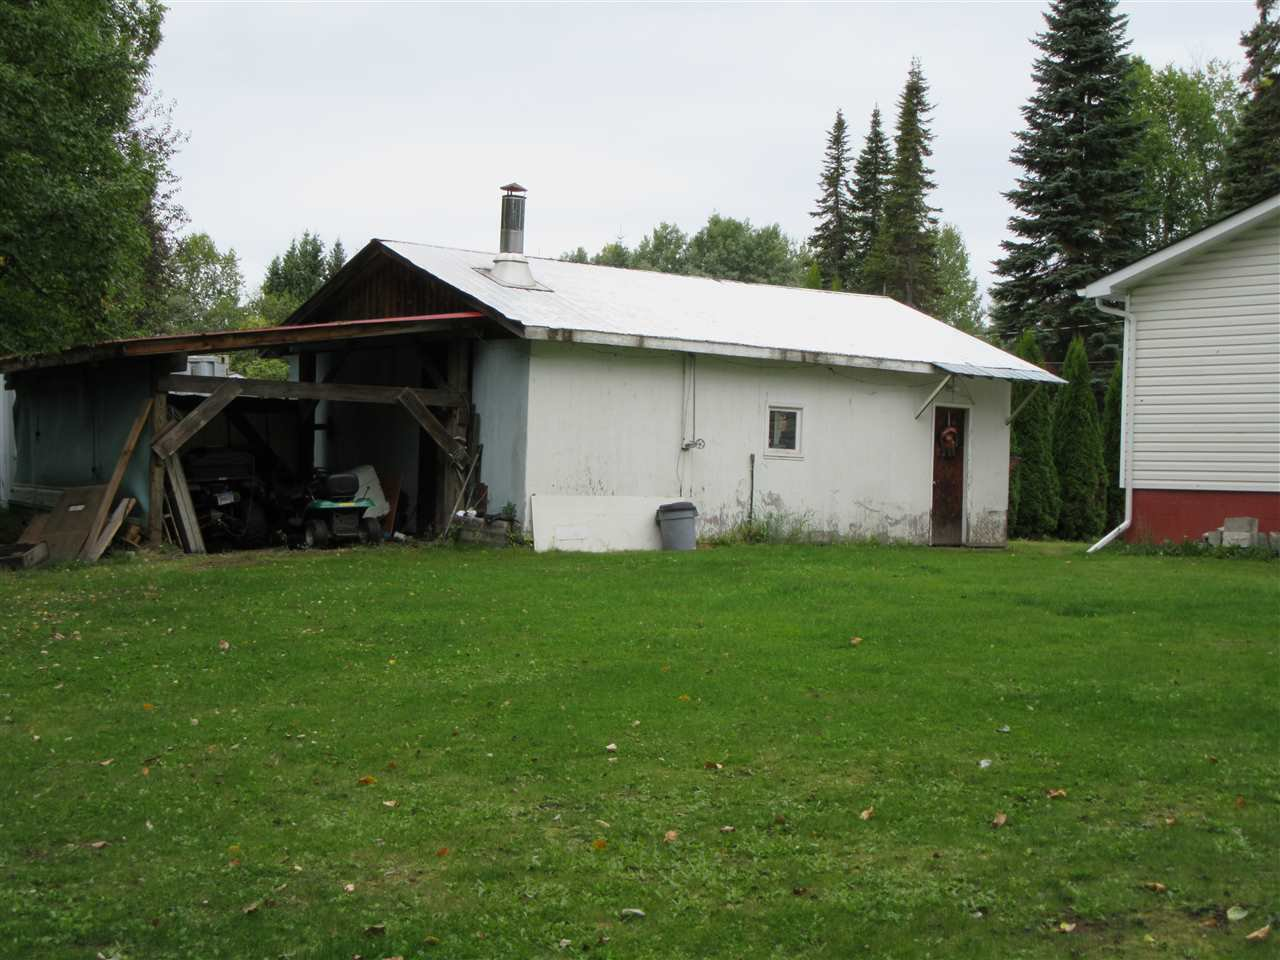 Photo 6: Photos: 4261 ARABIAN Road in Prince George: Emerald House for sale (PG City North (Zone 73))  : MLS®# R2404002